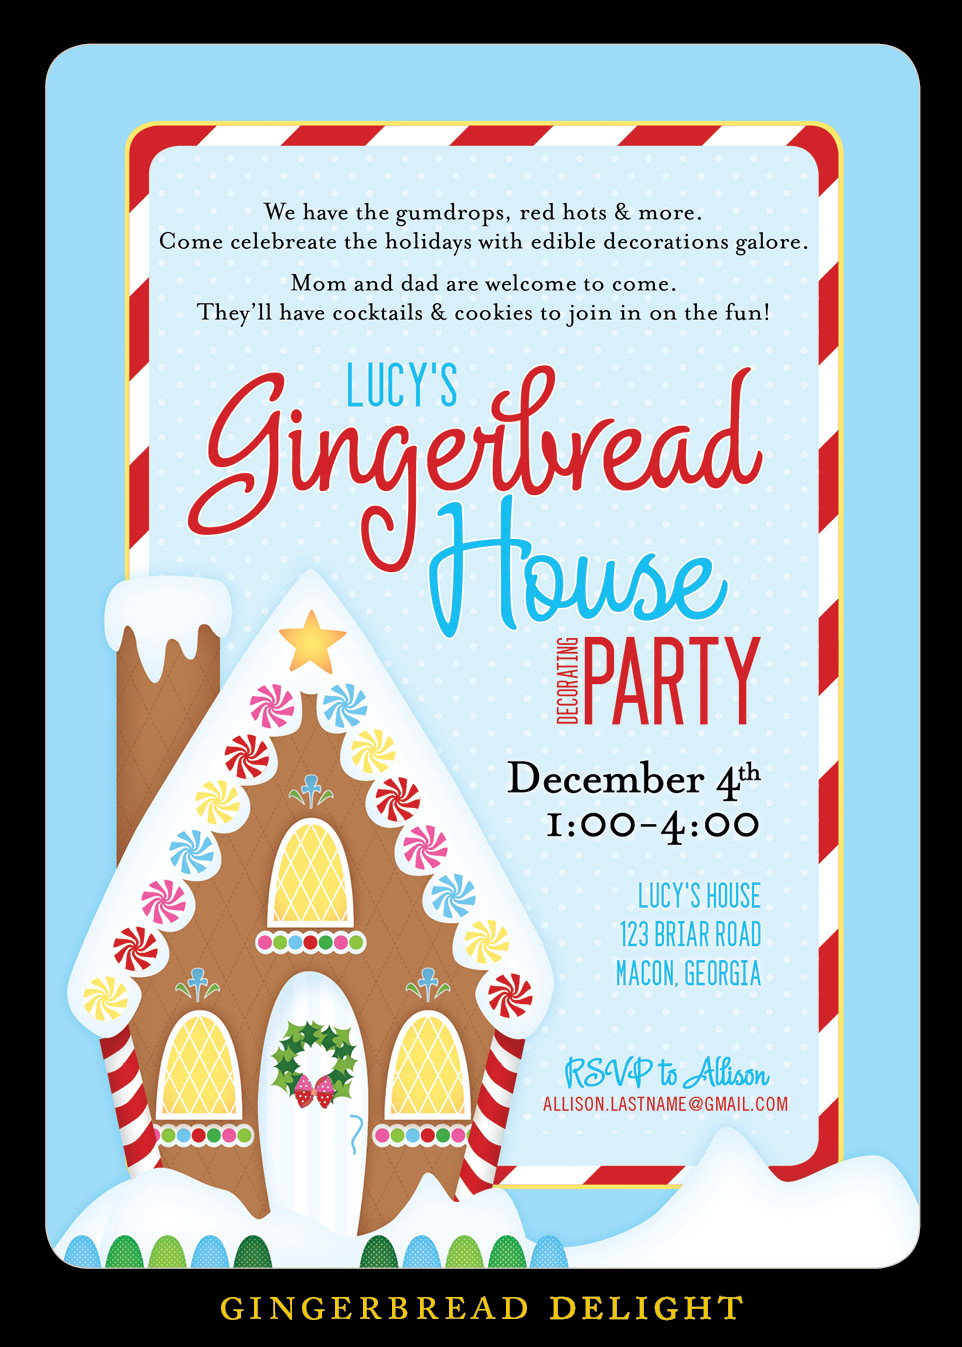 Nealon design gingerbread house decorating party invitation gingerbread house decorating party invitation filmwisefo Images